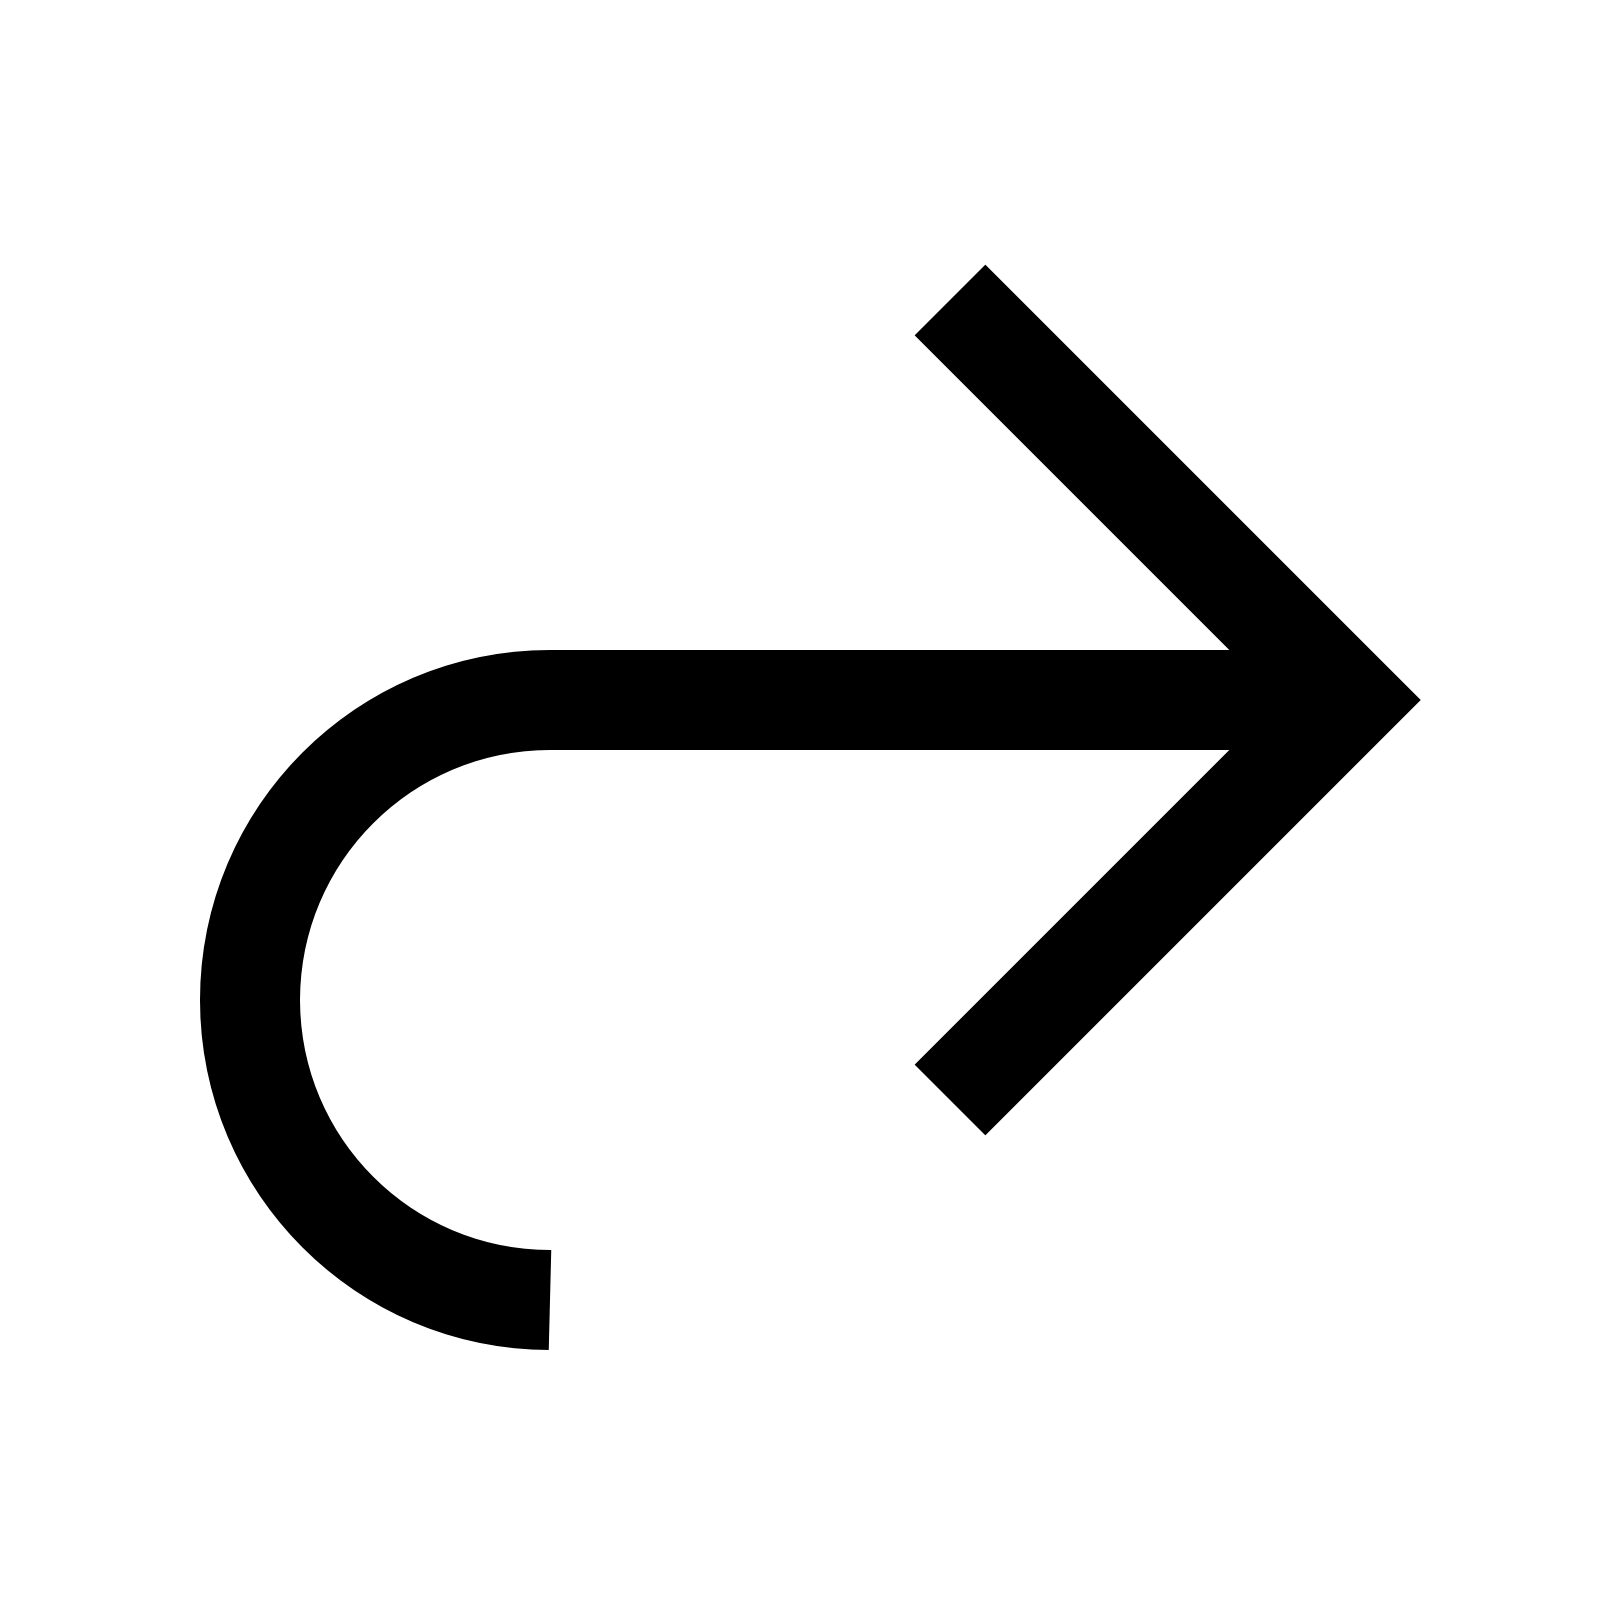 Right Arrow PNG - 25999